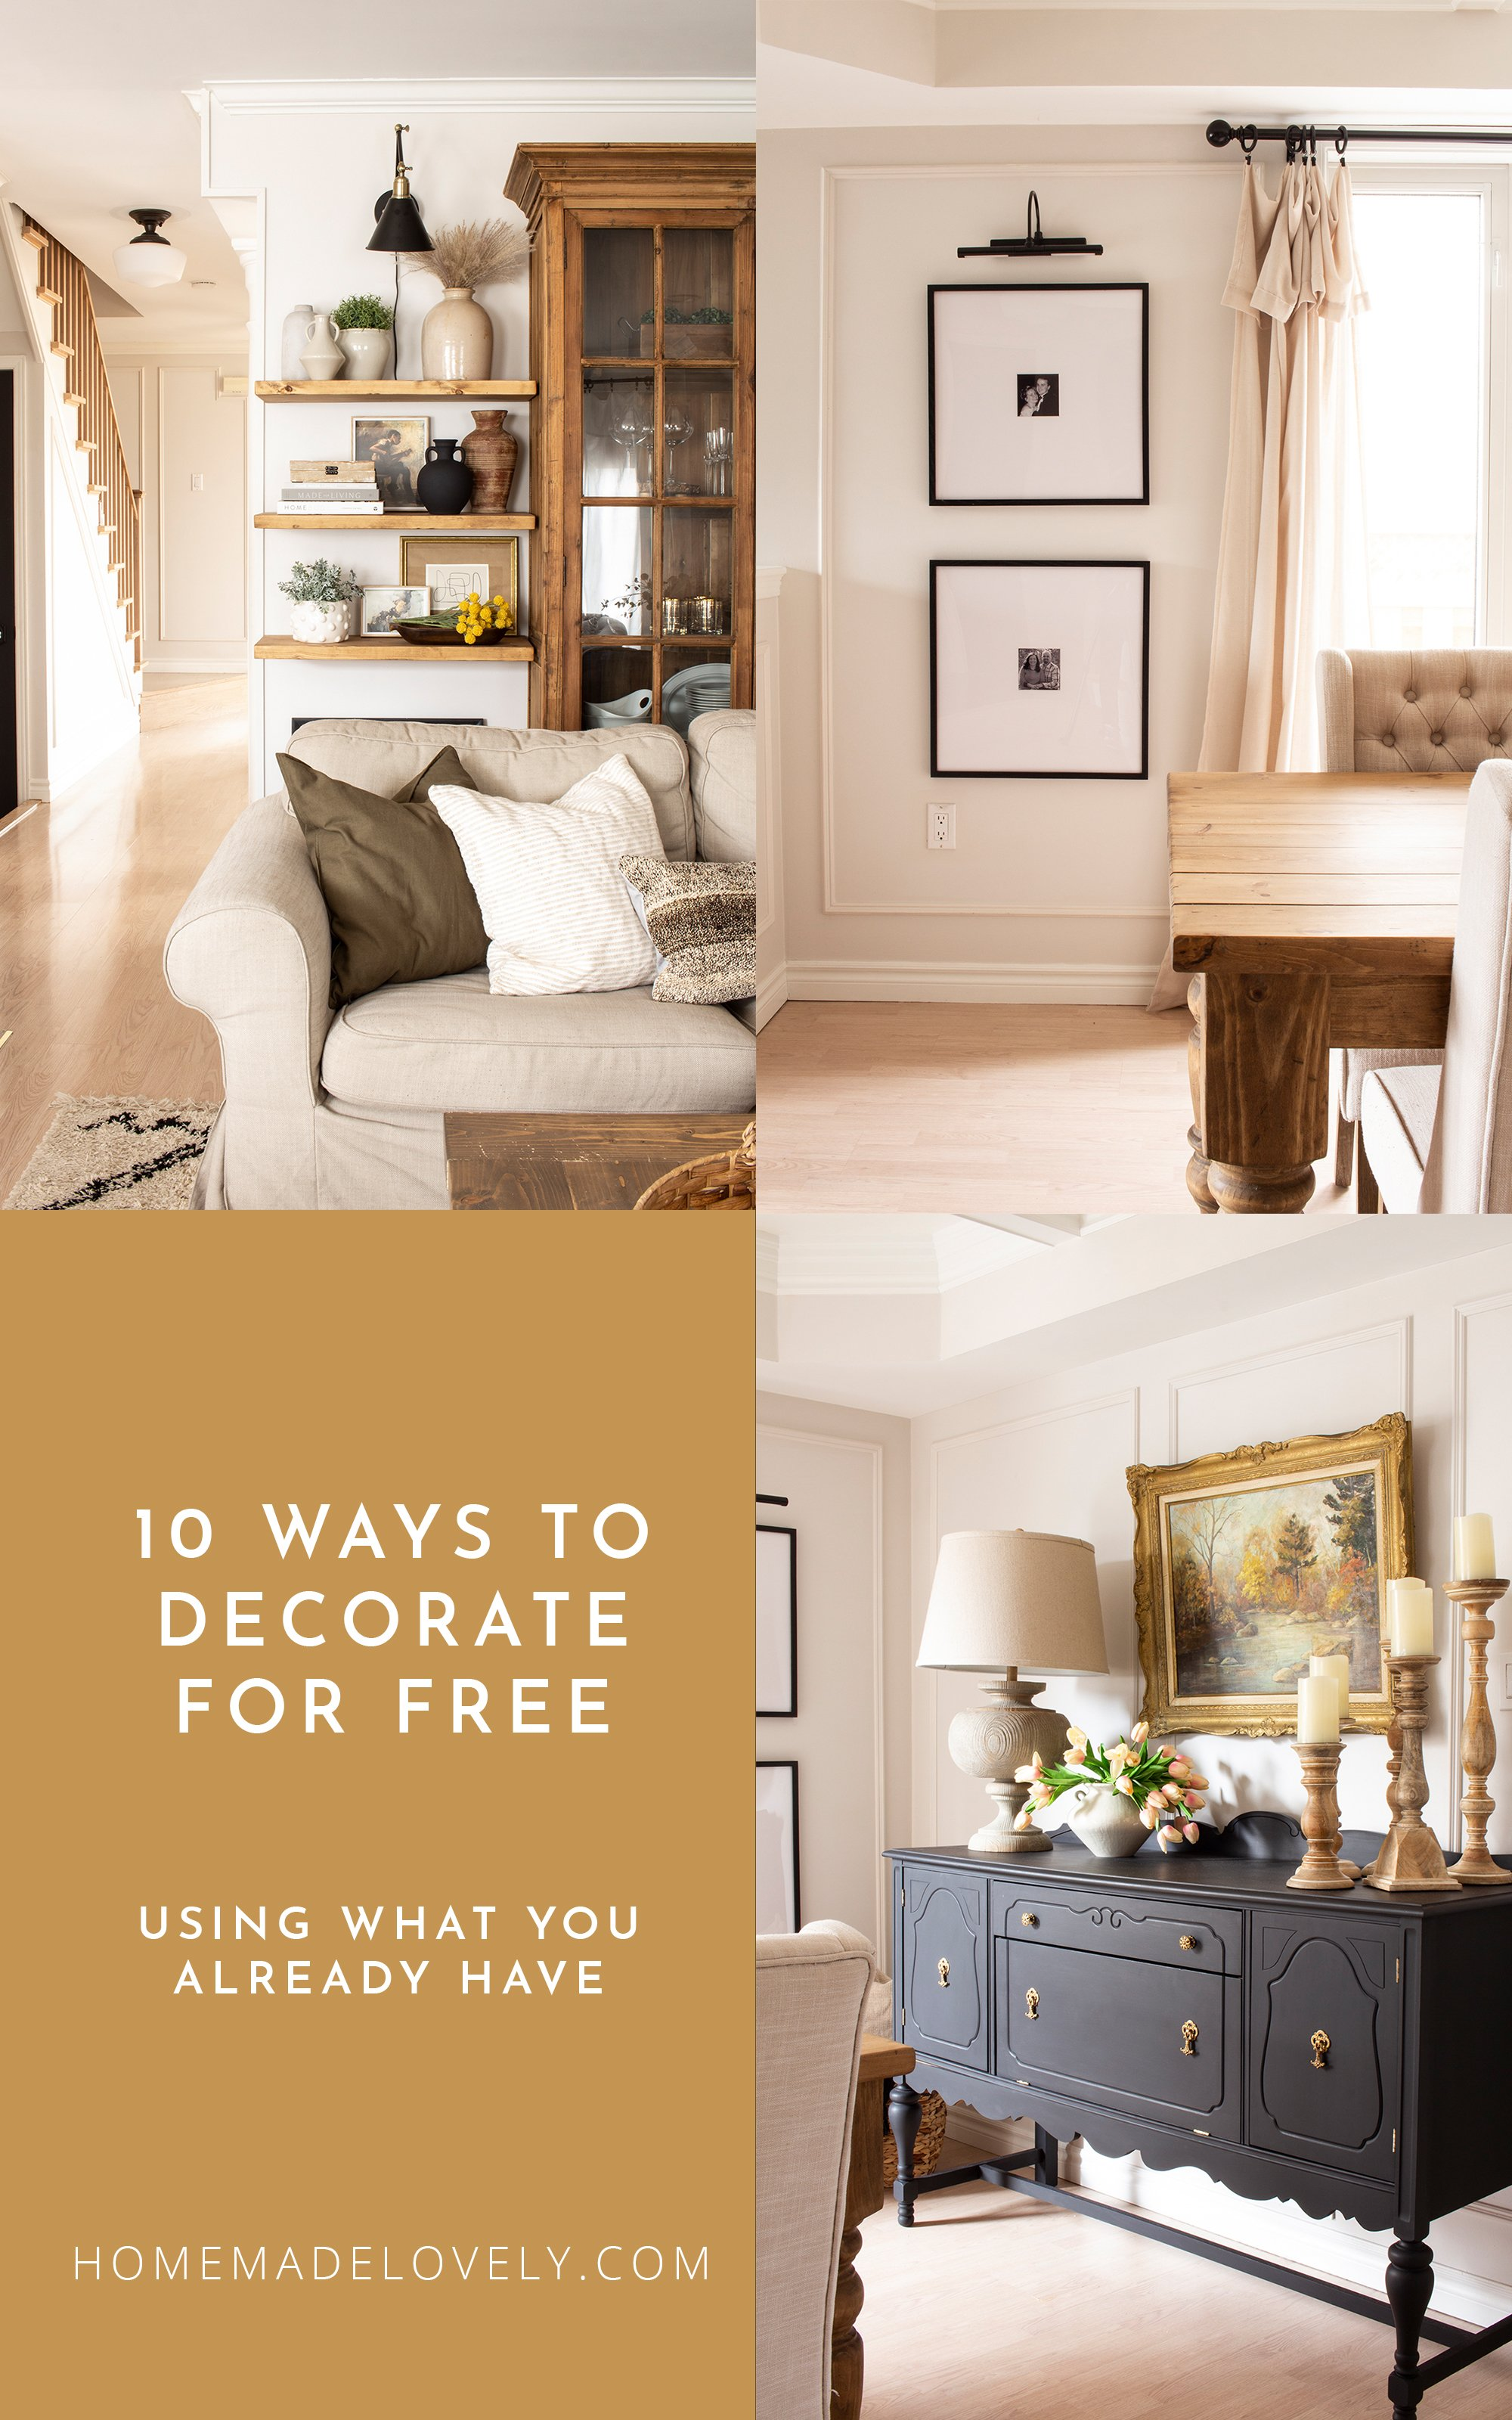 10 Ways to Decorate For Free Using What You Already Have